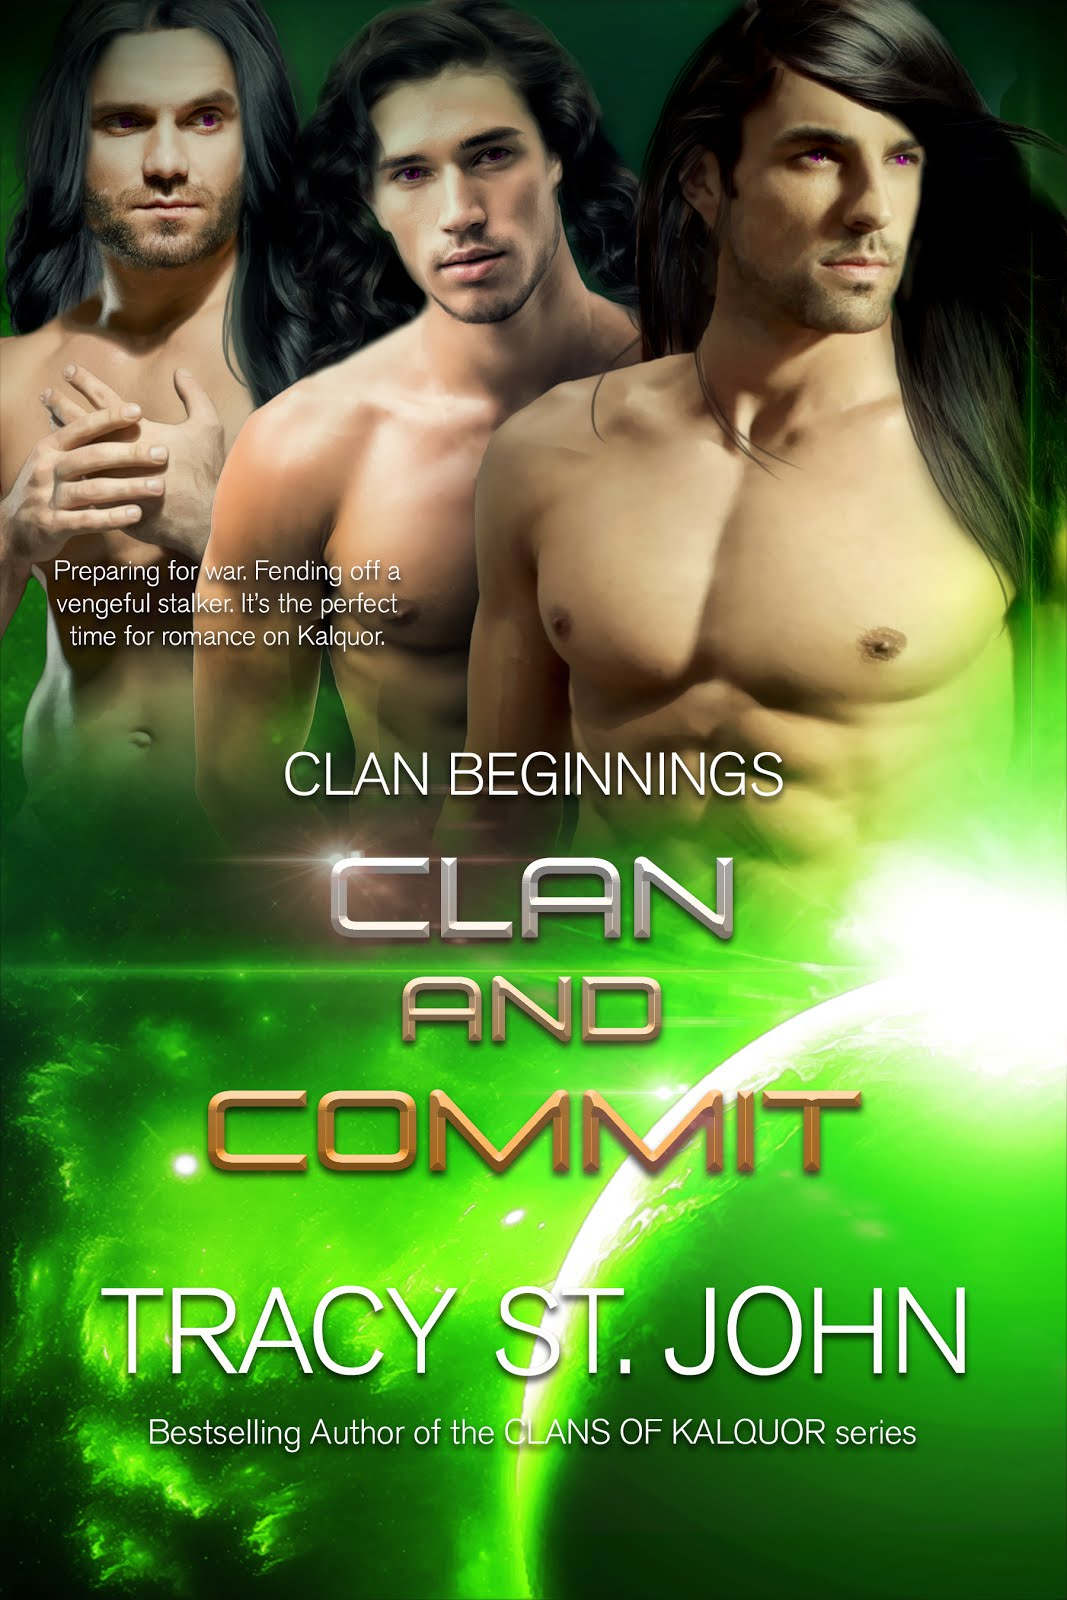 Clan Beginnings: Clan and Commit